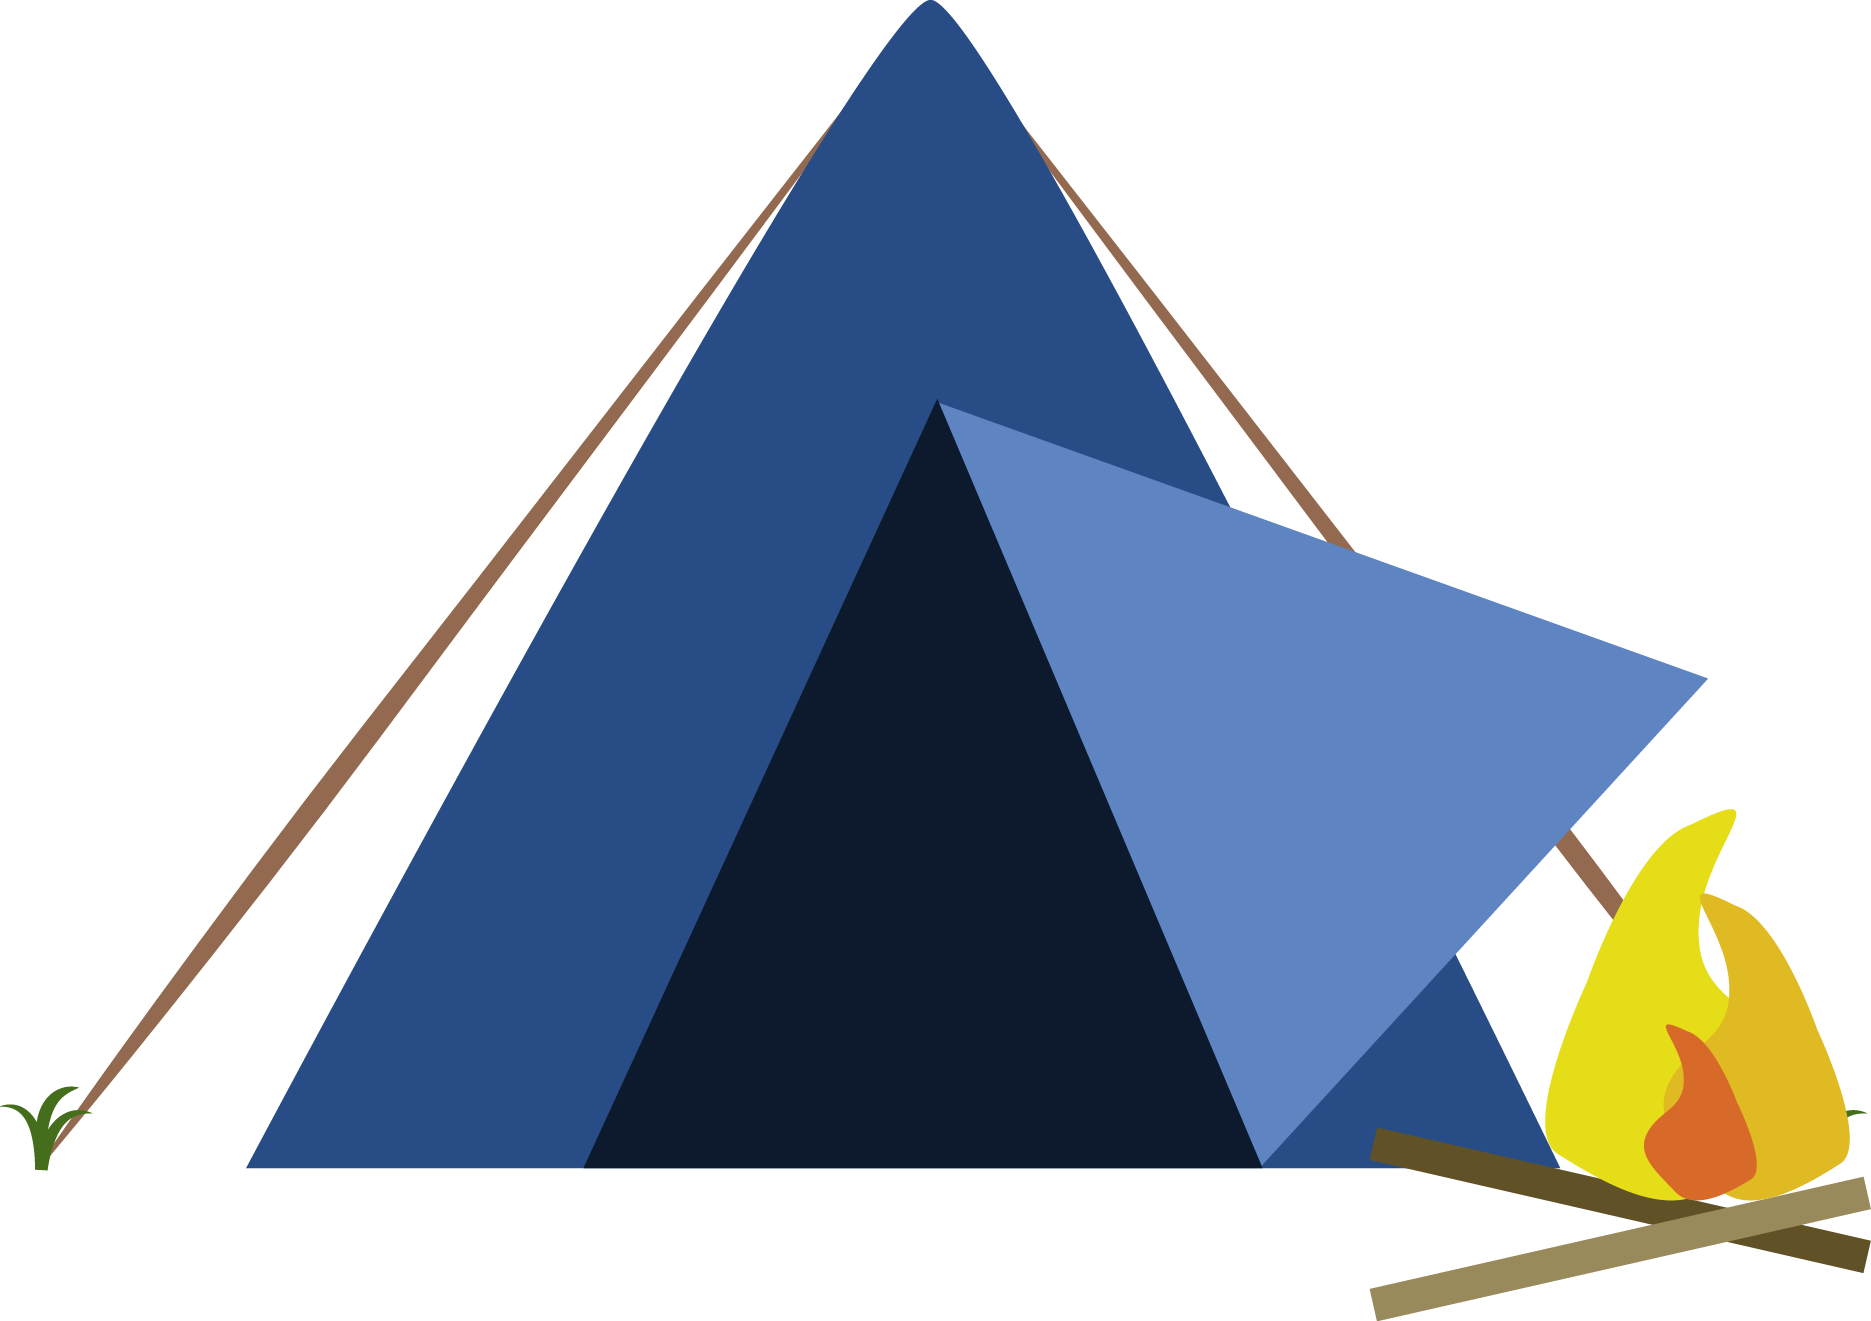 Campsite Hd PNG Image